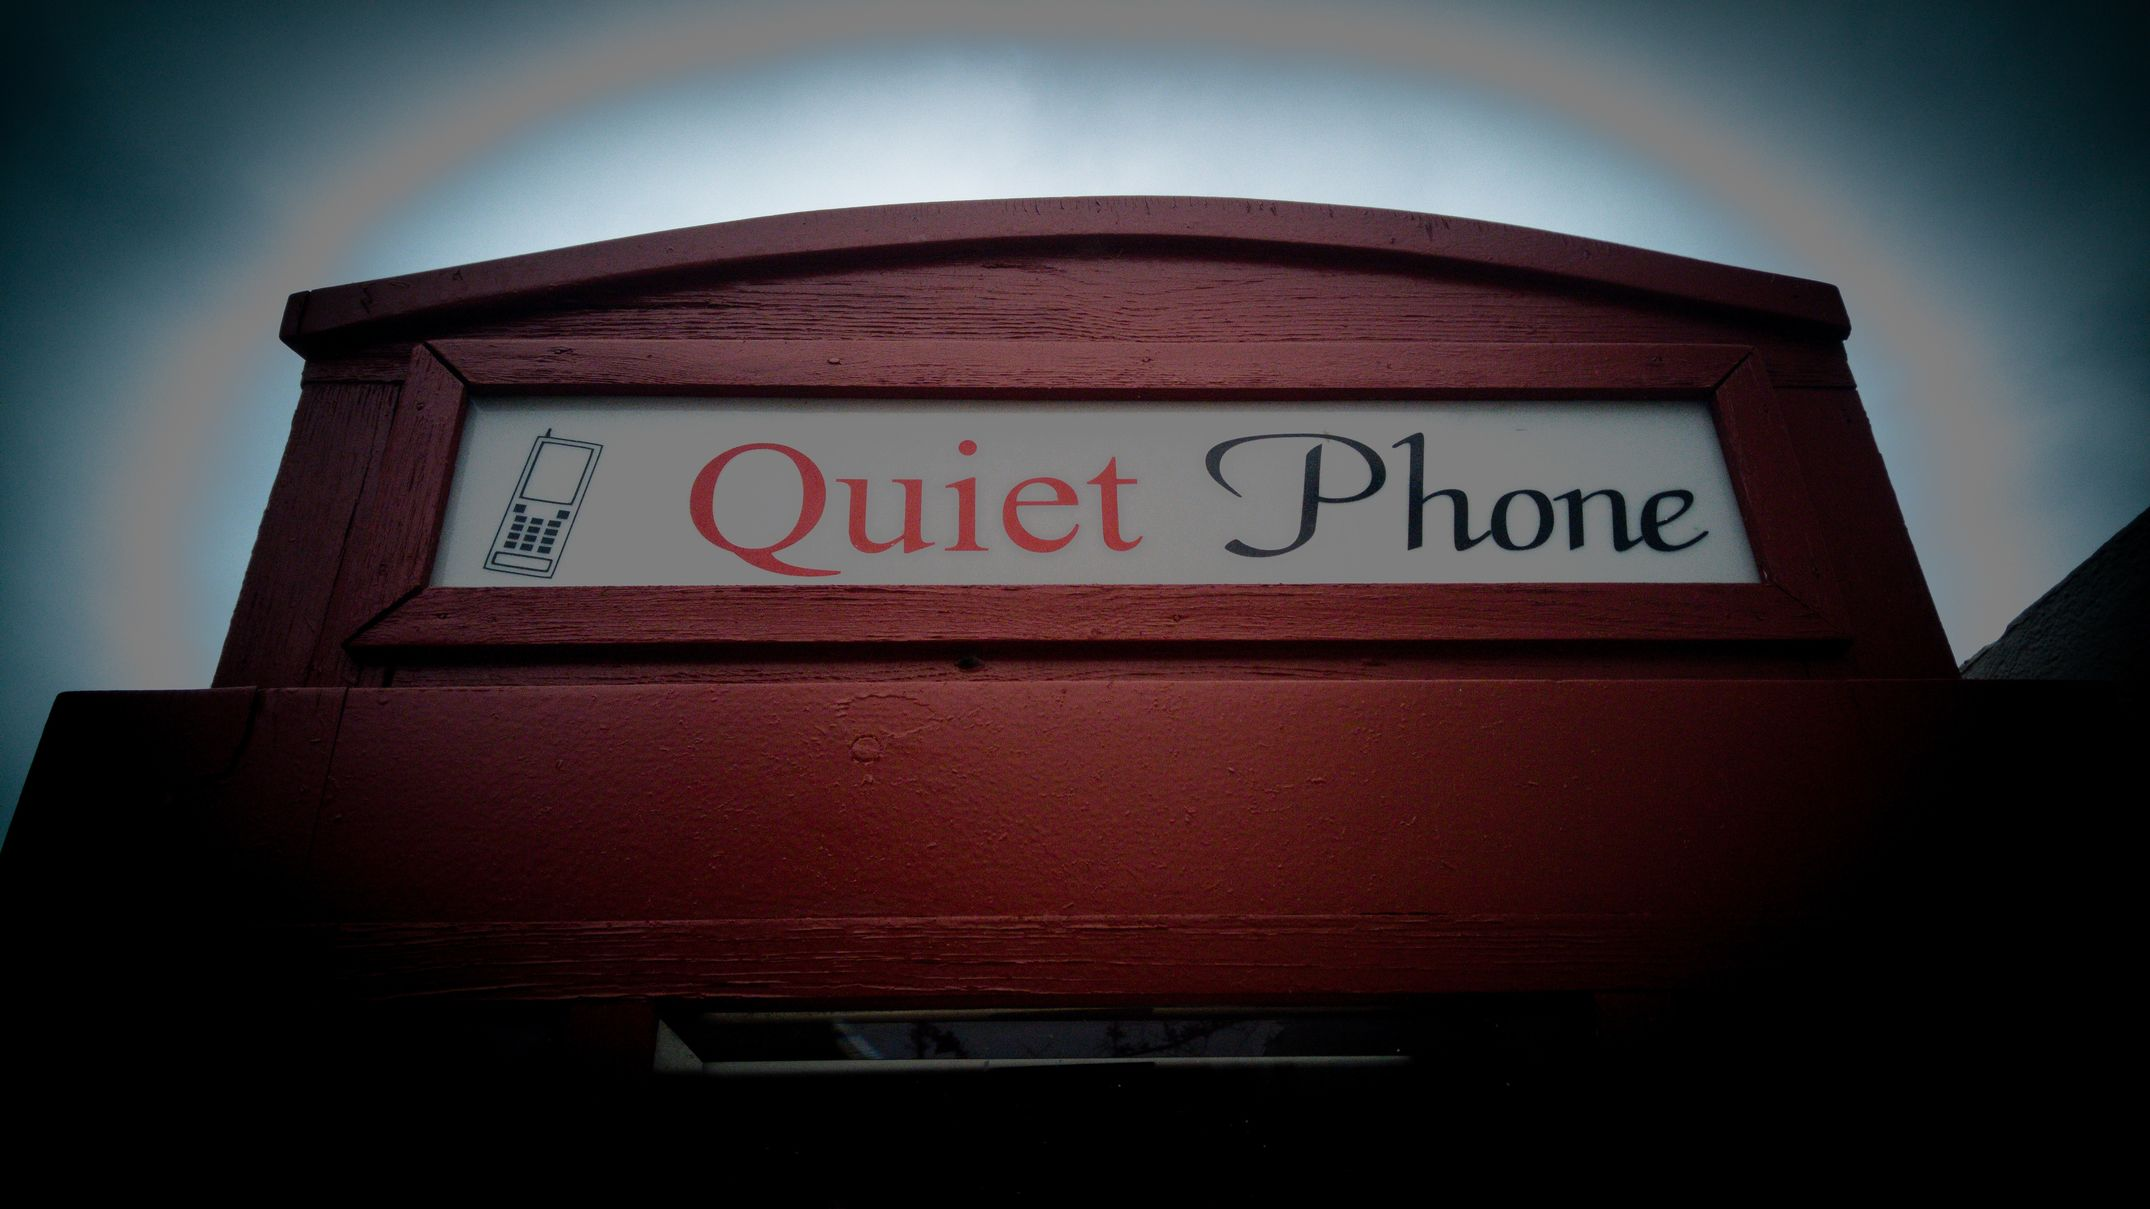 Old Oldphonebox Sky Quit